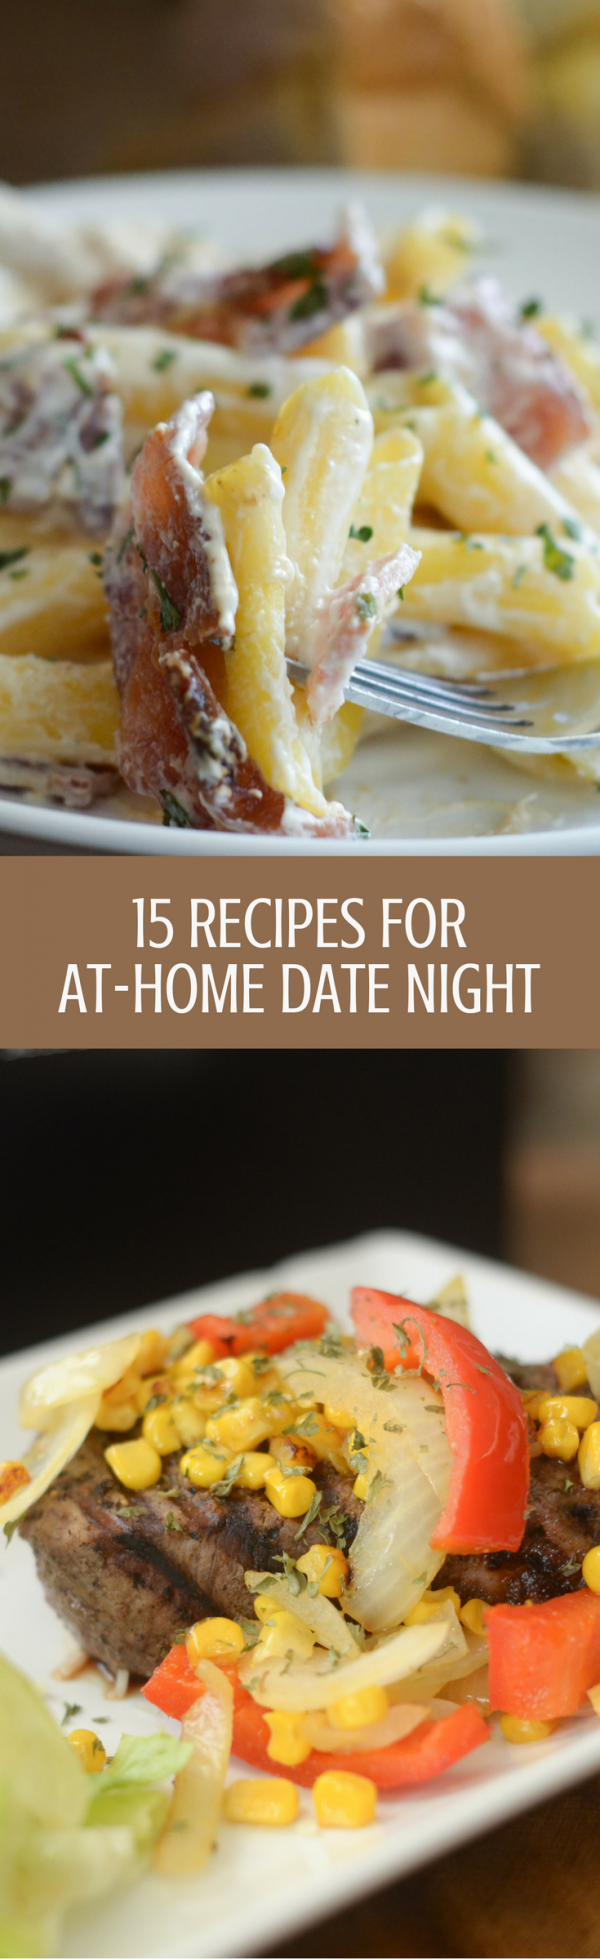 15 Recipes for At-Home Date Night